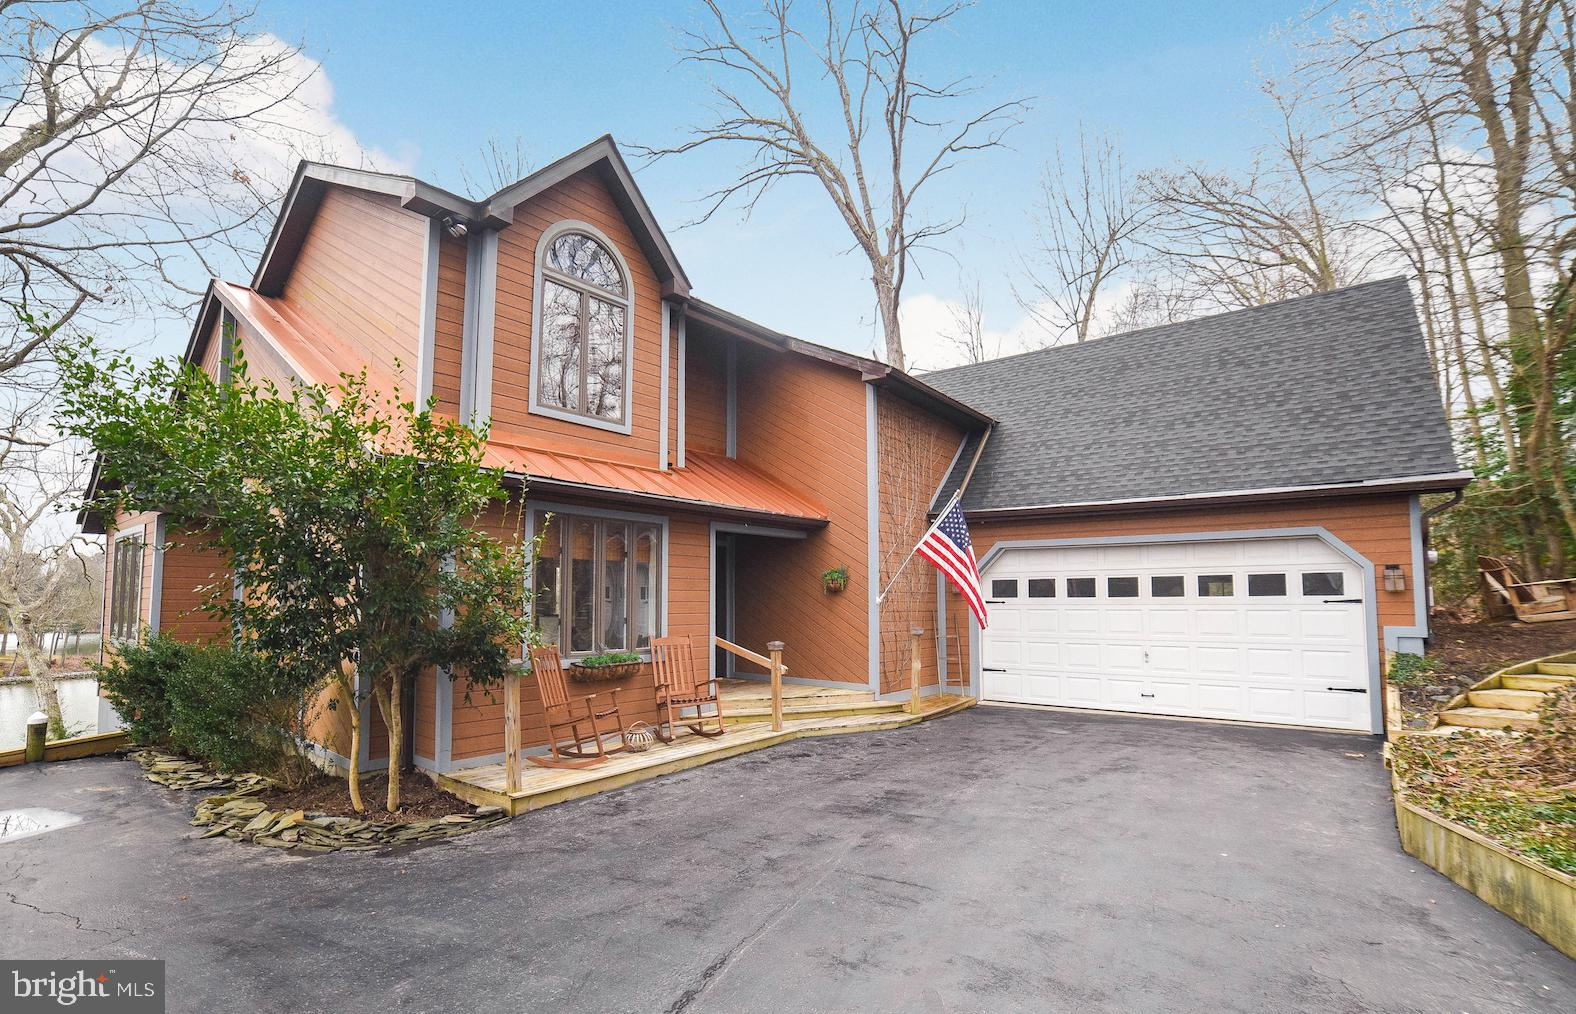 24730 RED HILL COURT, HOLLYWOOD, MD 20636